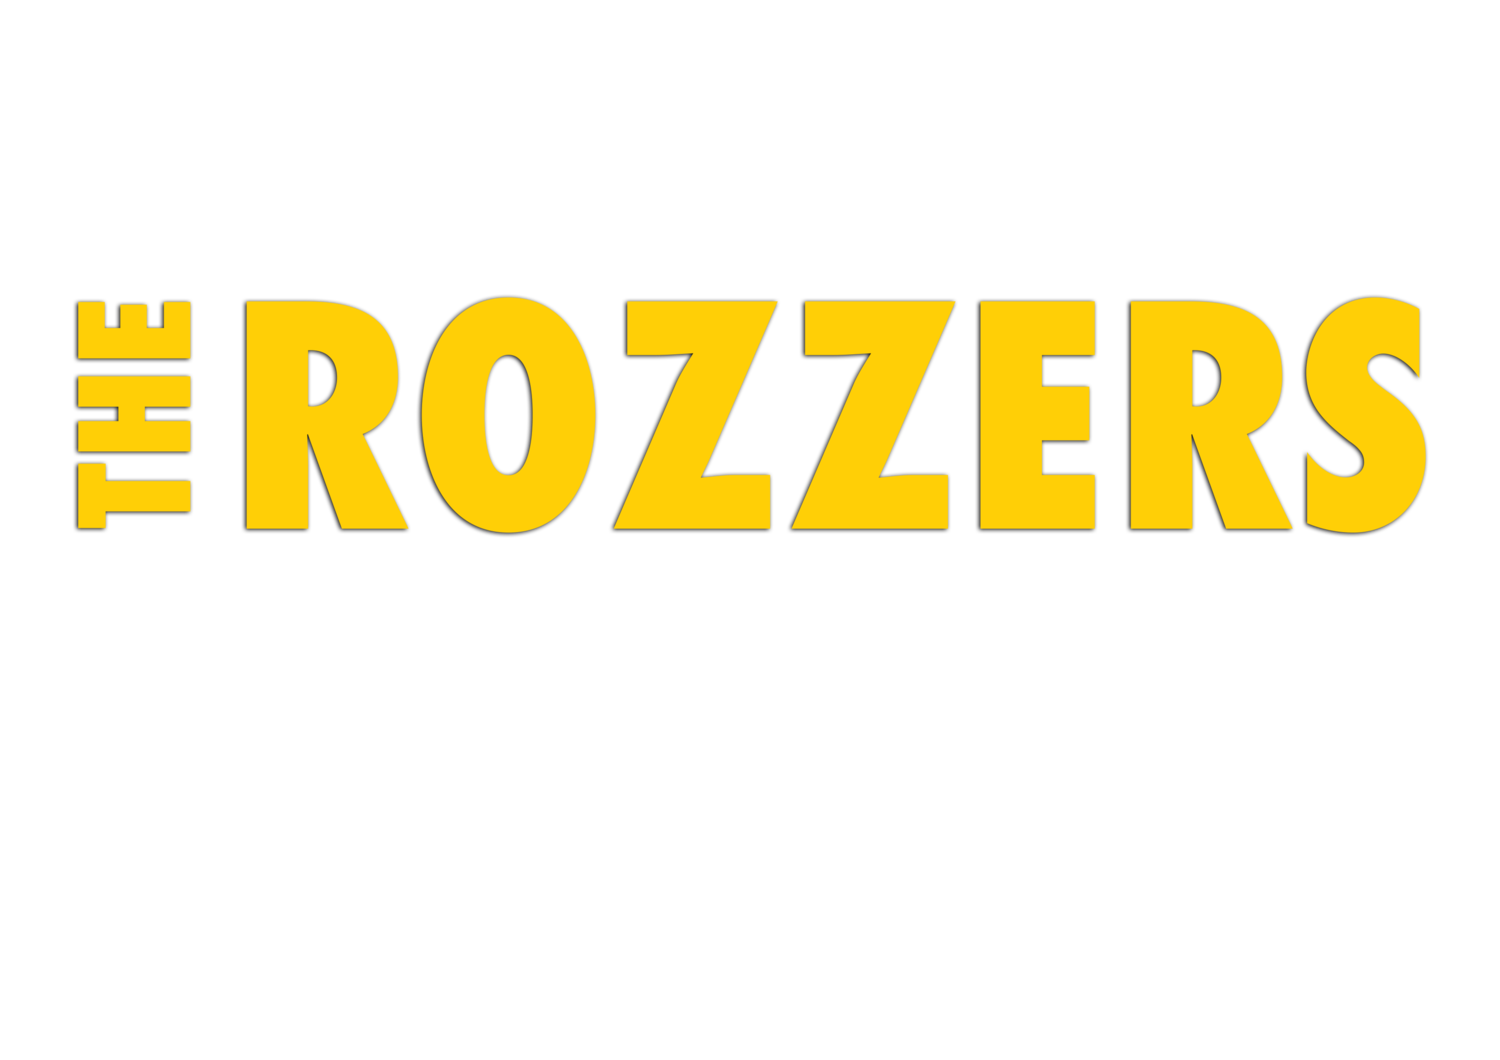 The Rozzers - Sting & Police Tribute Band UK